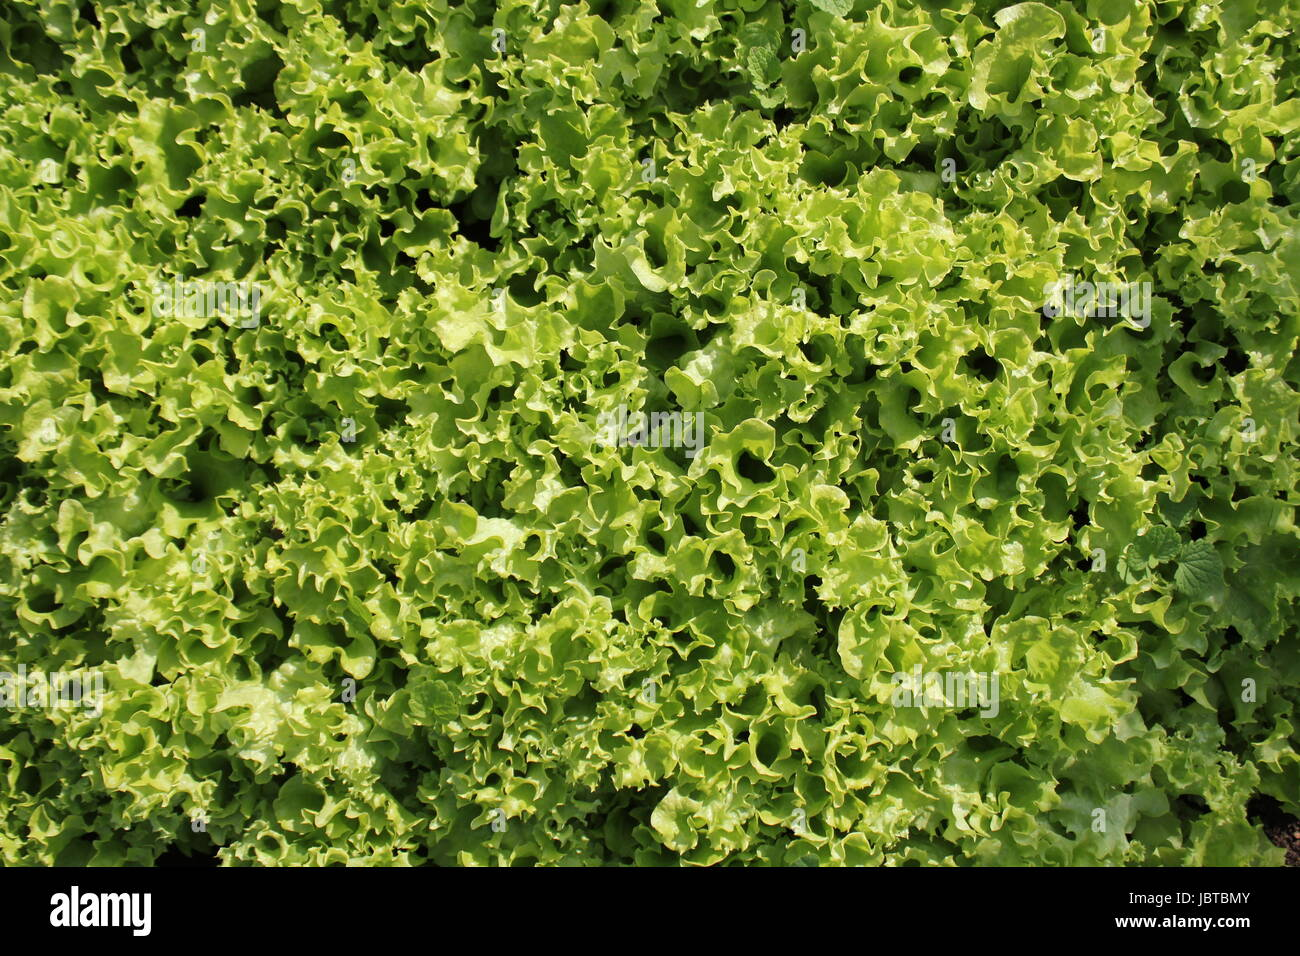 Fresh green curly Lettuce salad background. Top view - Stock Image